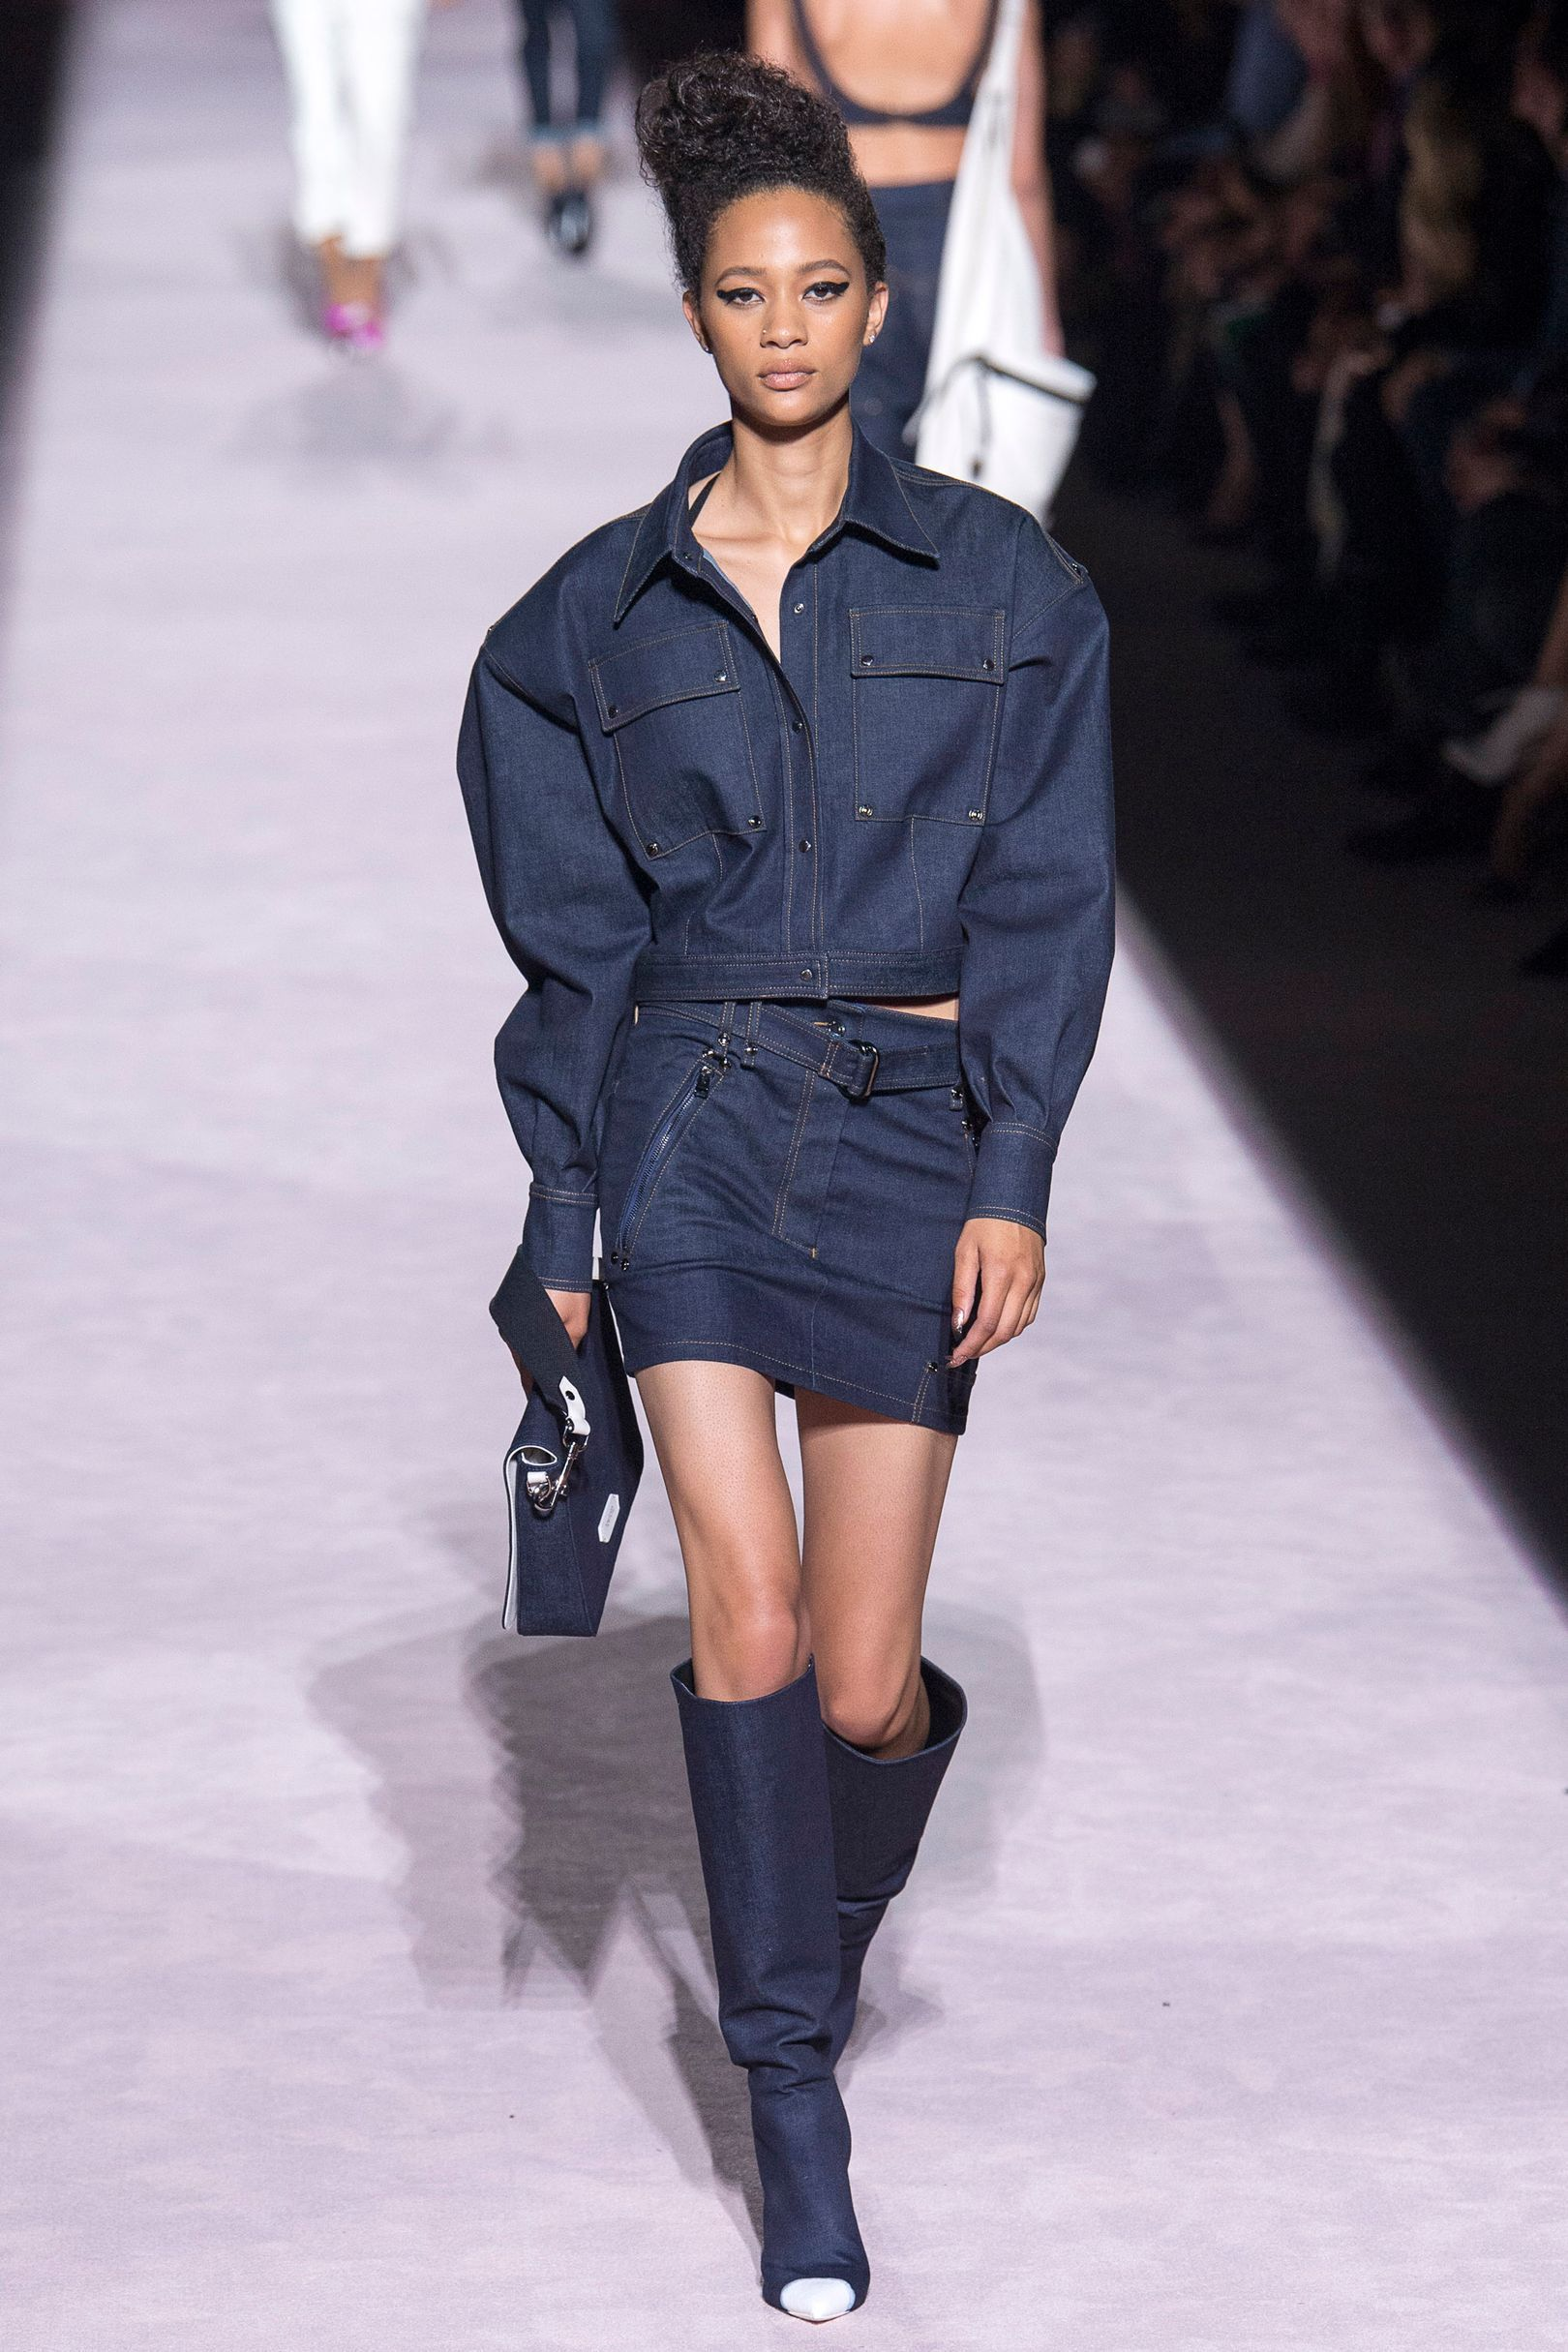 No one blinked at the marc jacobs fashion show when a model wore a - Tom Ford Spring Summer 2018 Ready To Wear